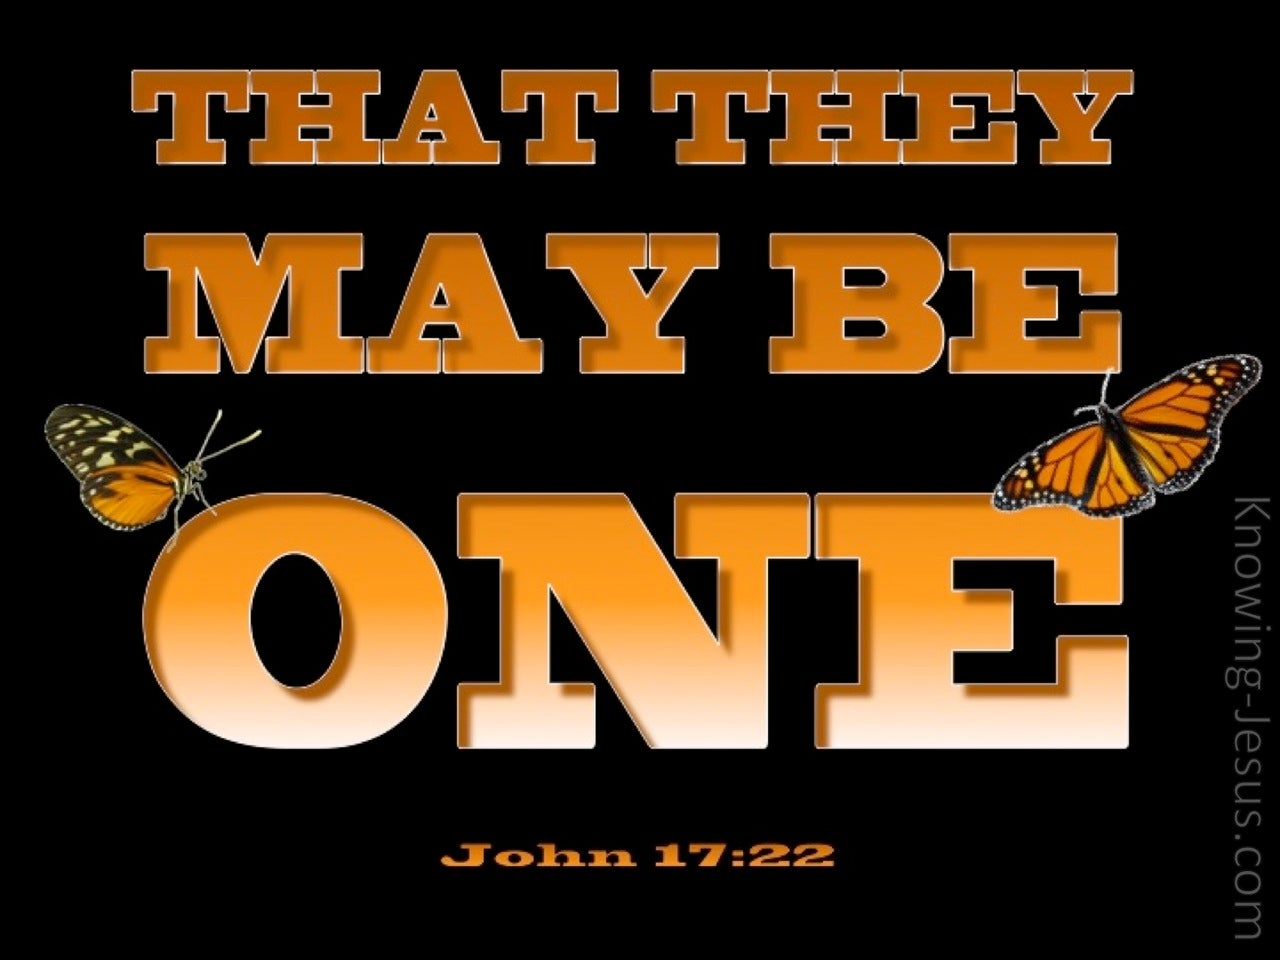 John 17:22 That They May Be One (black)